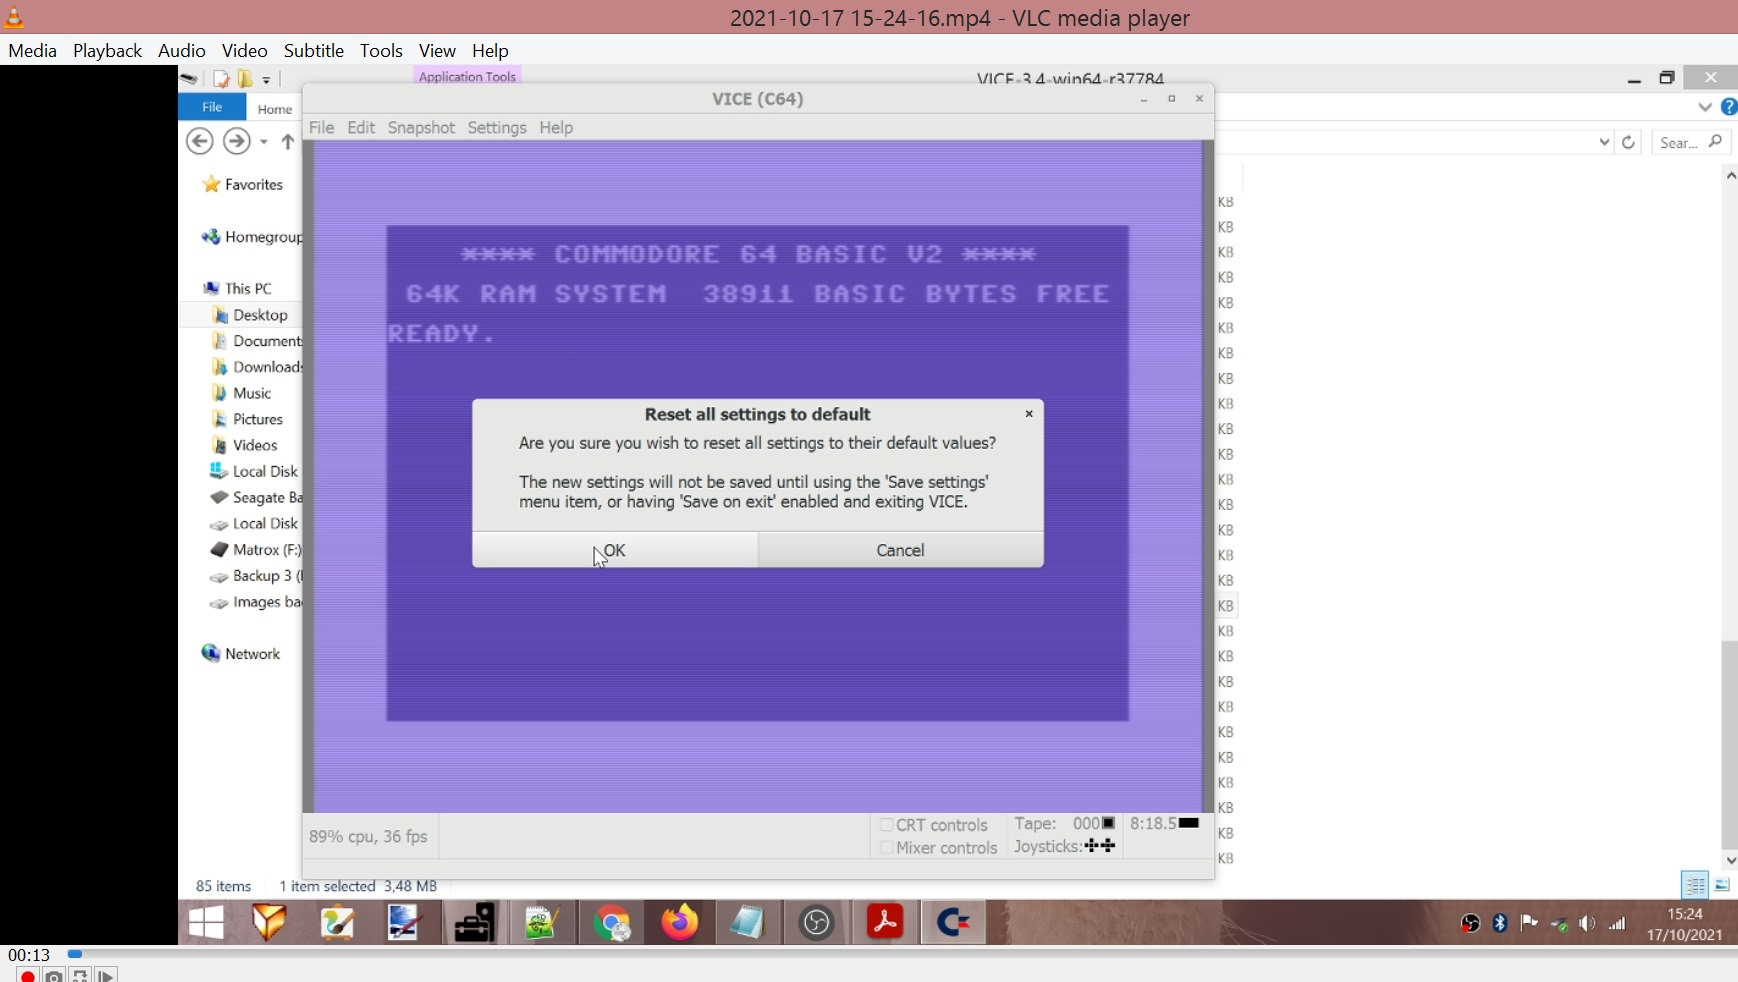 LuigiRuffolo: Bumble-Bee (Commodore 64 Emulated) 8,260 points on 2021-10-17 08:34:51